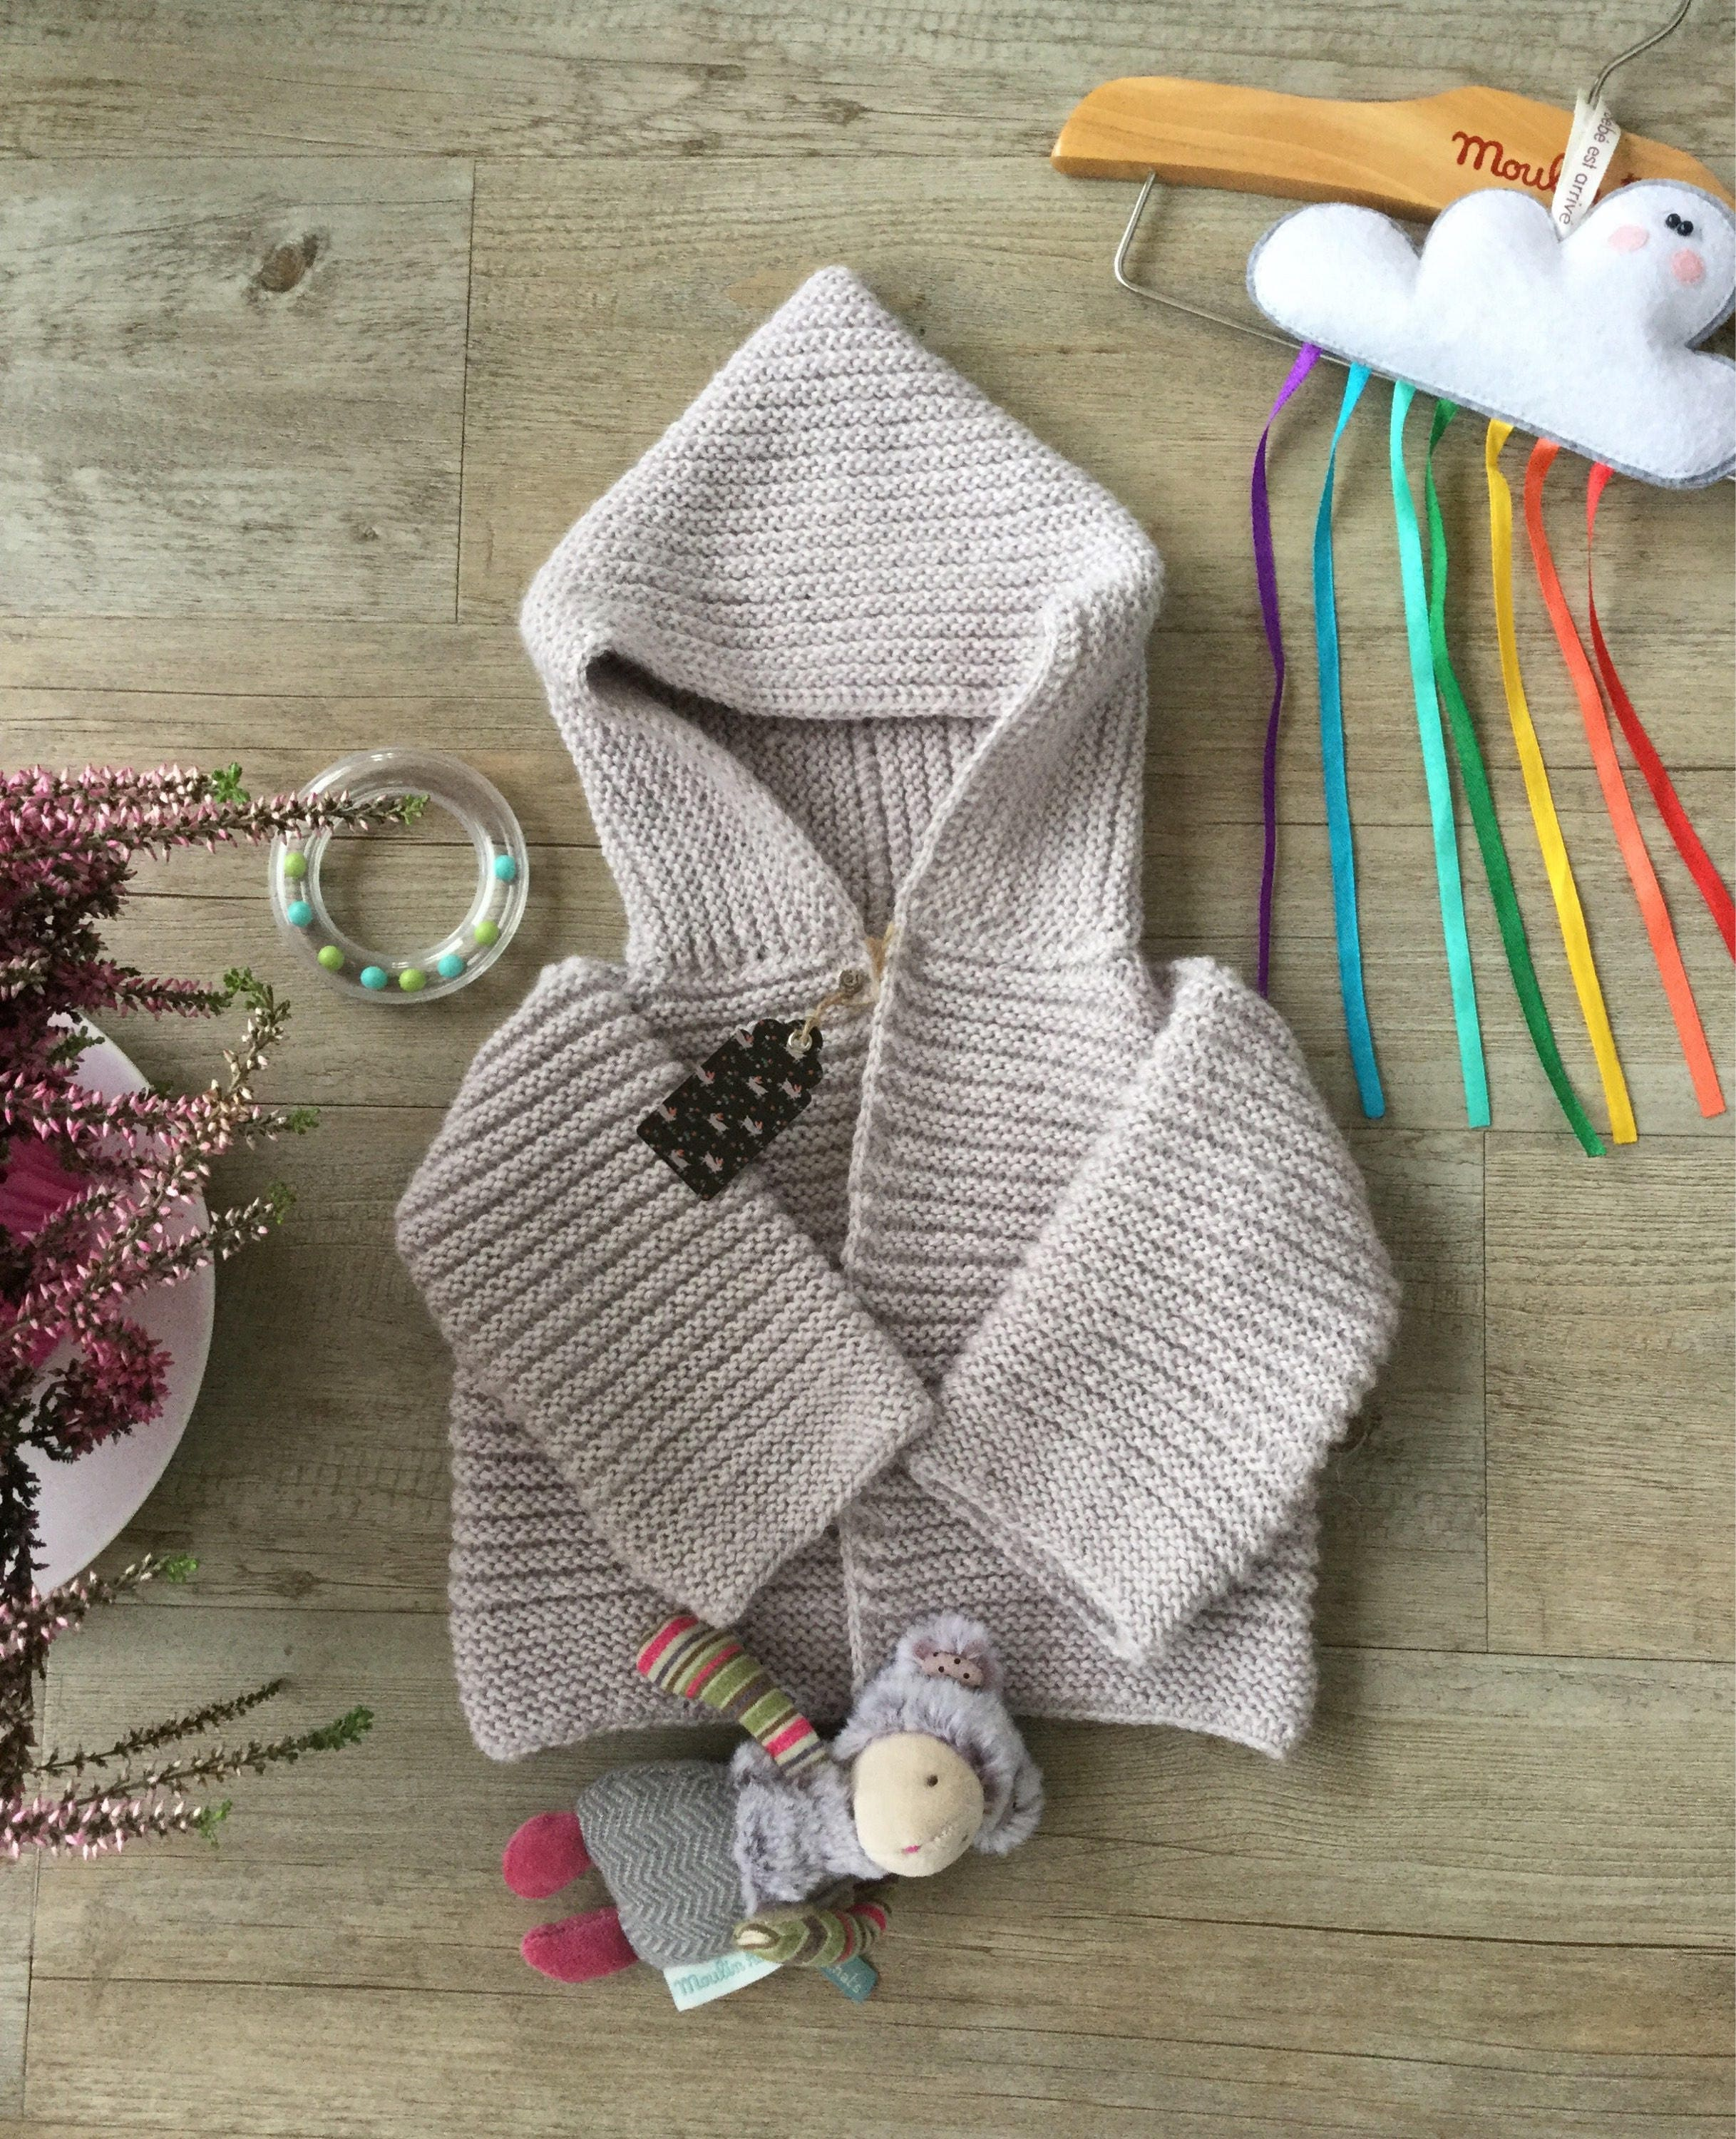 082c12d14 Knitted baby jacket. Knitted baby cardigan. Baby alpaca